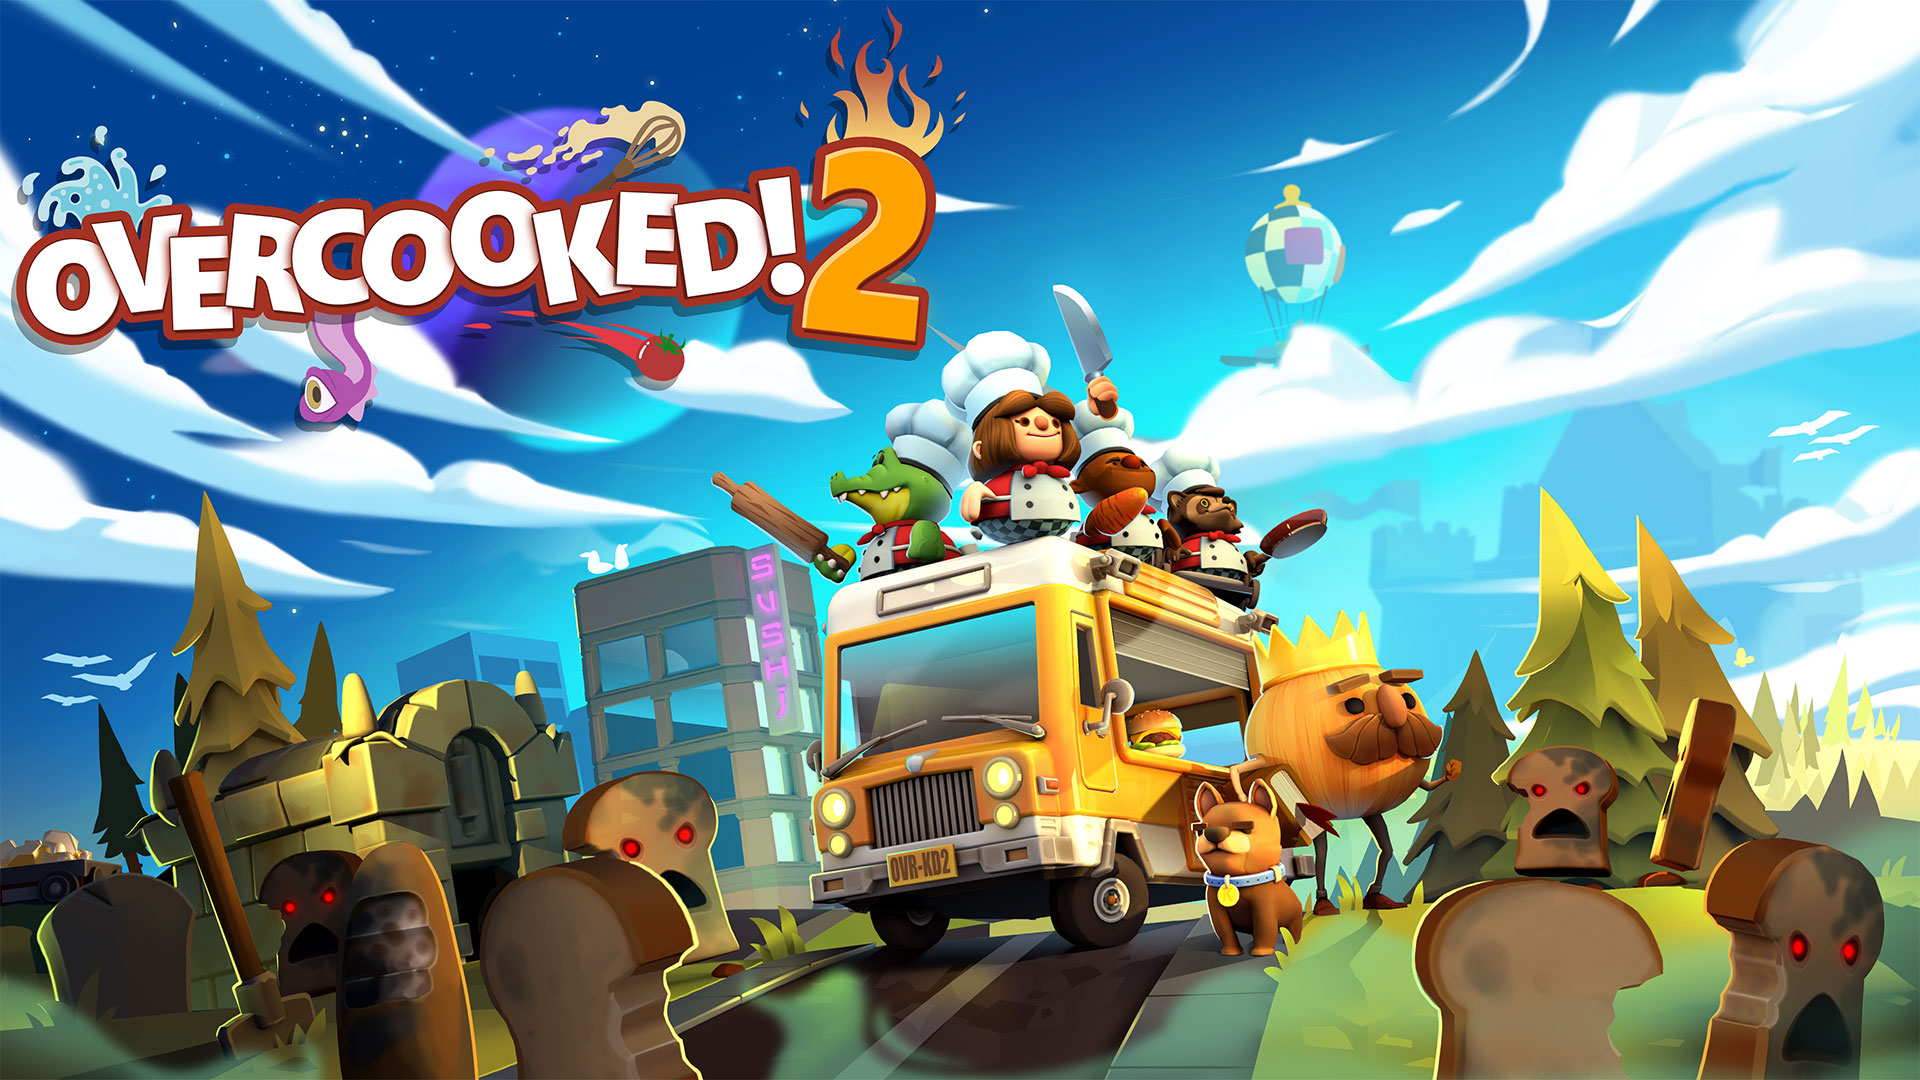 Today's Best Game Deals: Overcooked! 2 for Switch $19, Crash Bandicoot N. Sane Trilogy $24, more